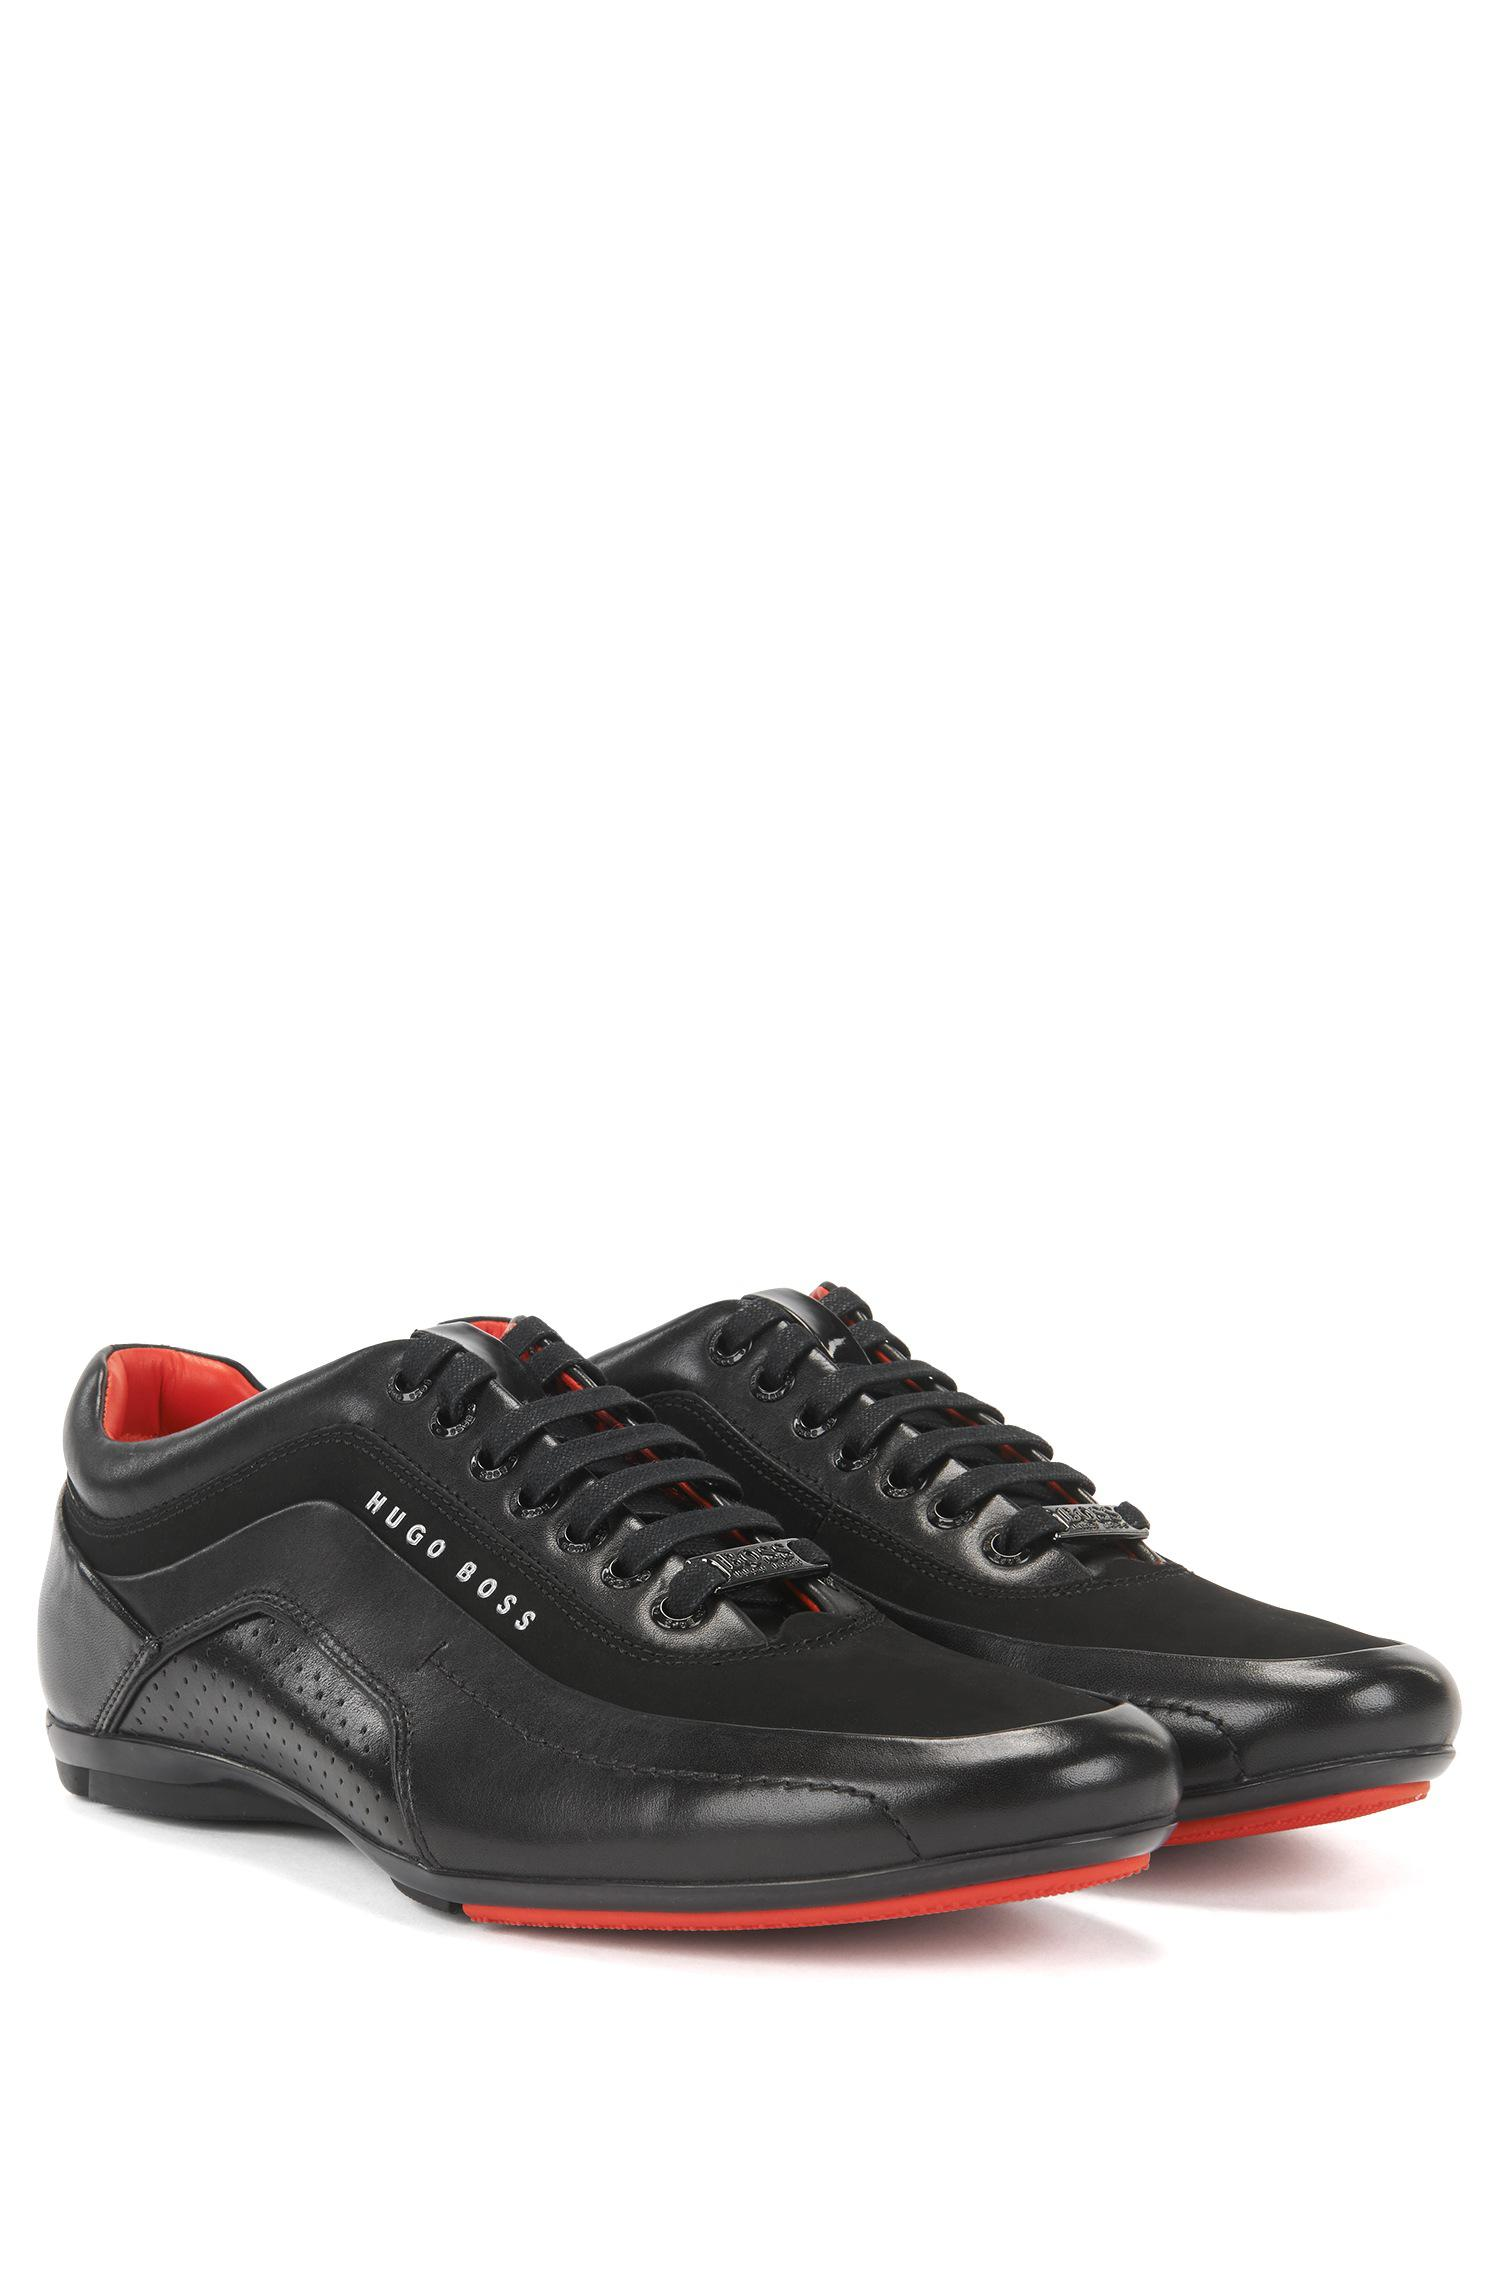 abba7c23c6d BOSS Trainers In Leather And Carbon Fibre in Black for Men - Lyst